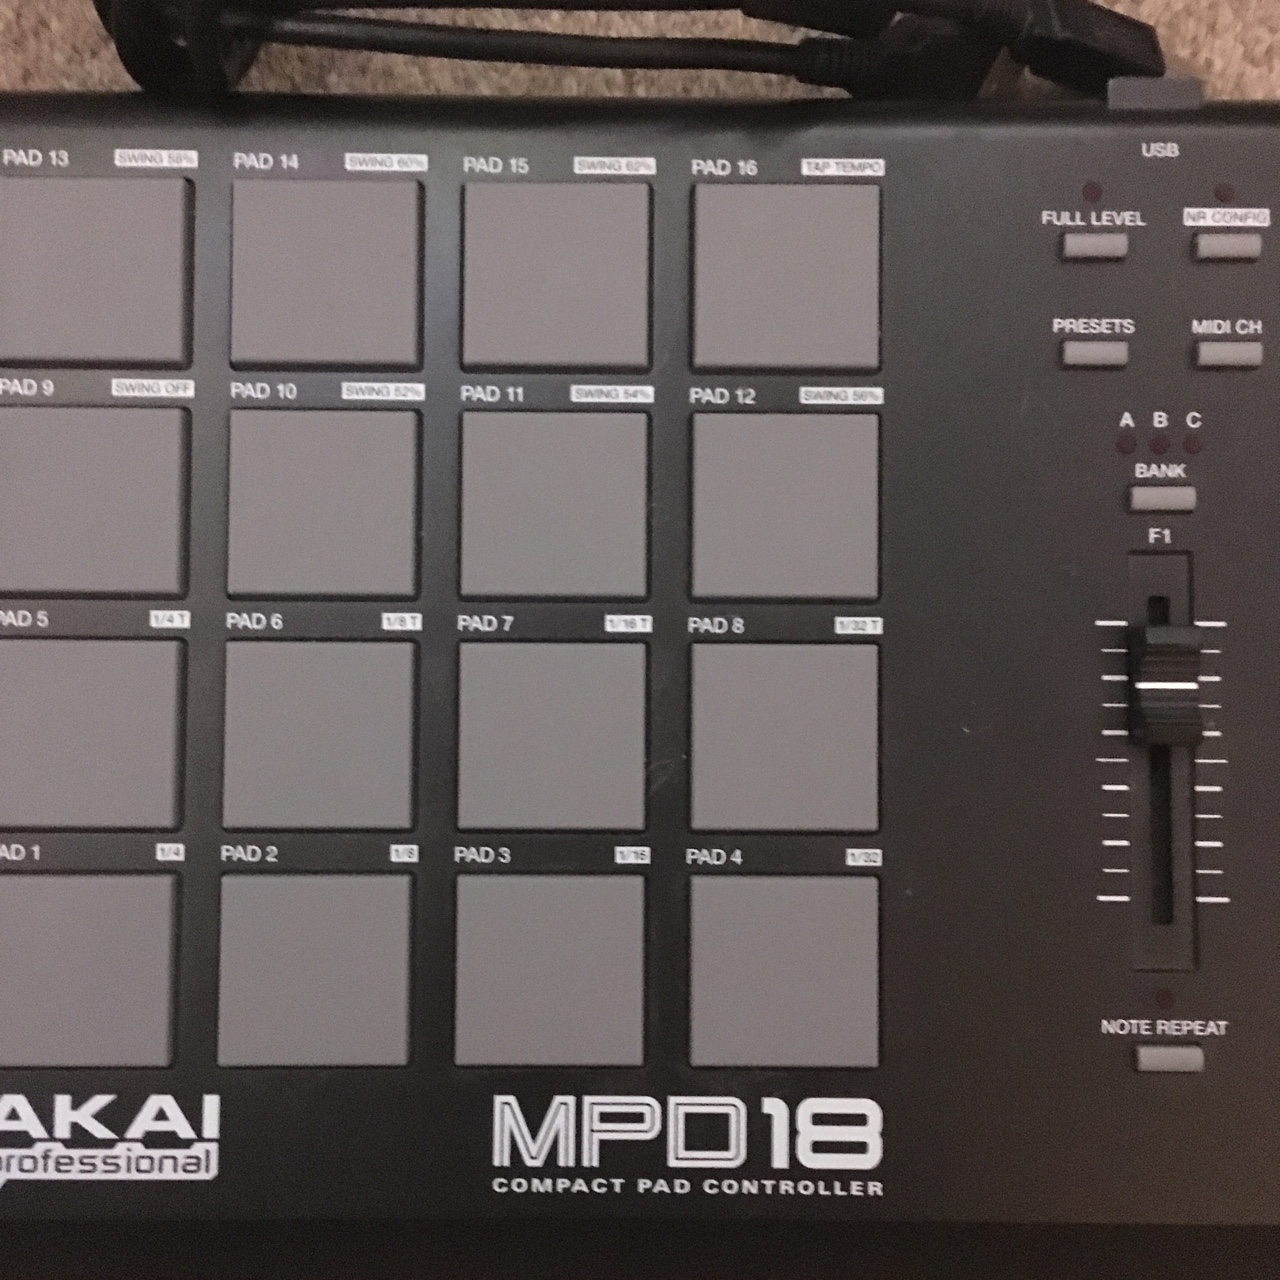 AKAI MPD18 Compact pad controller  Comes with USB    - Depop